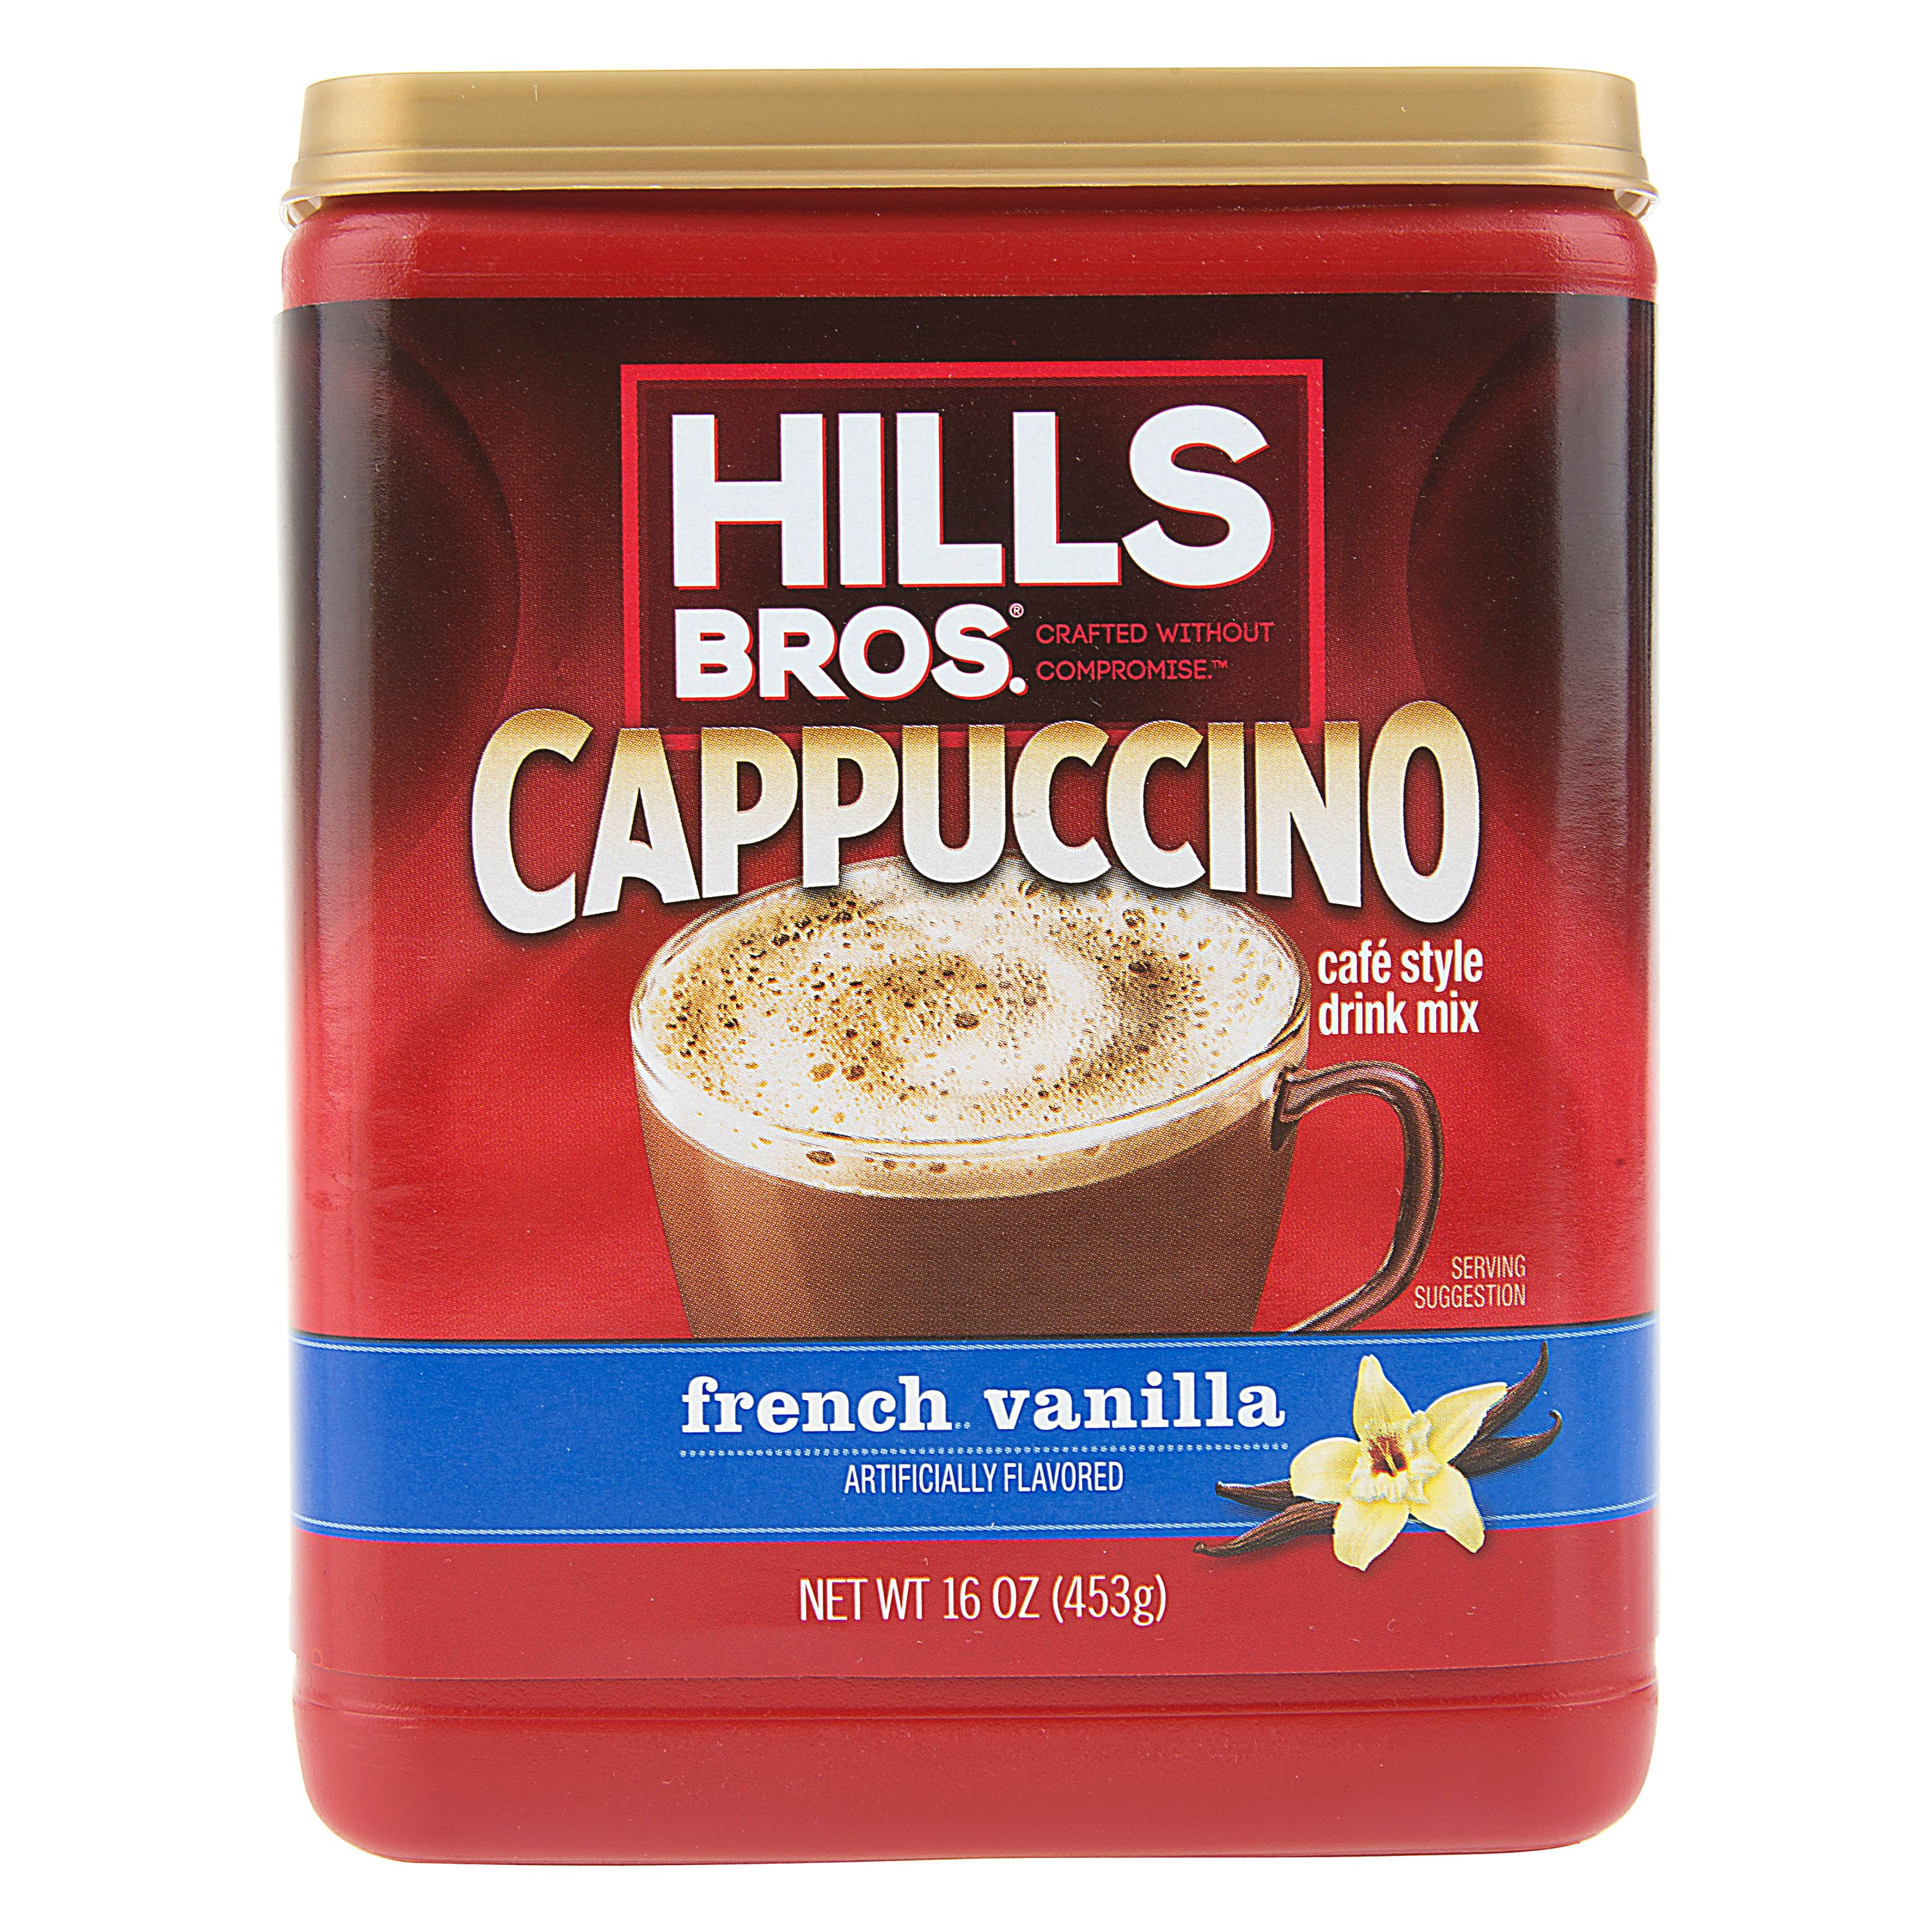 Hills Bros. French Vanilla Cappuccino Instant Coffee Powder Drink Mix, 16 Ounce Canister